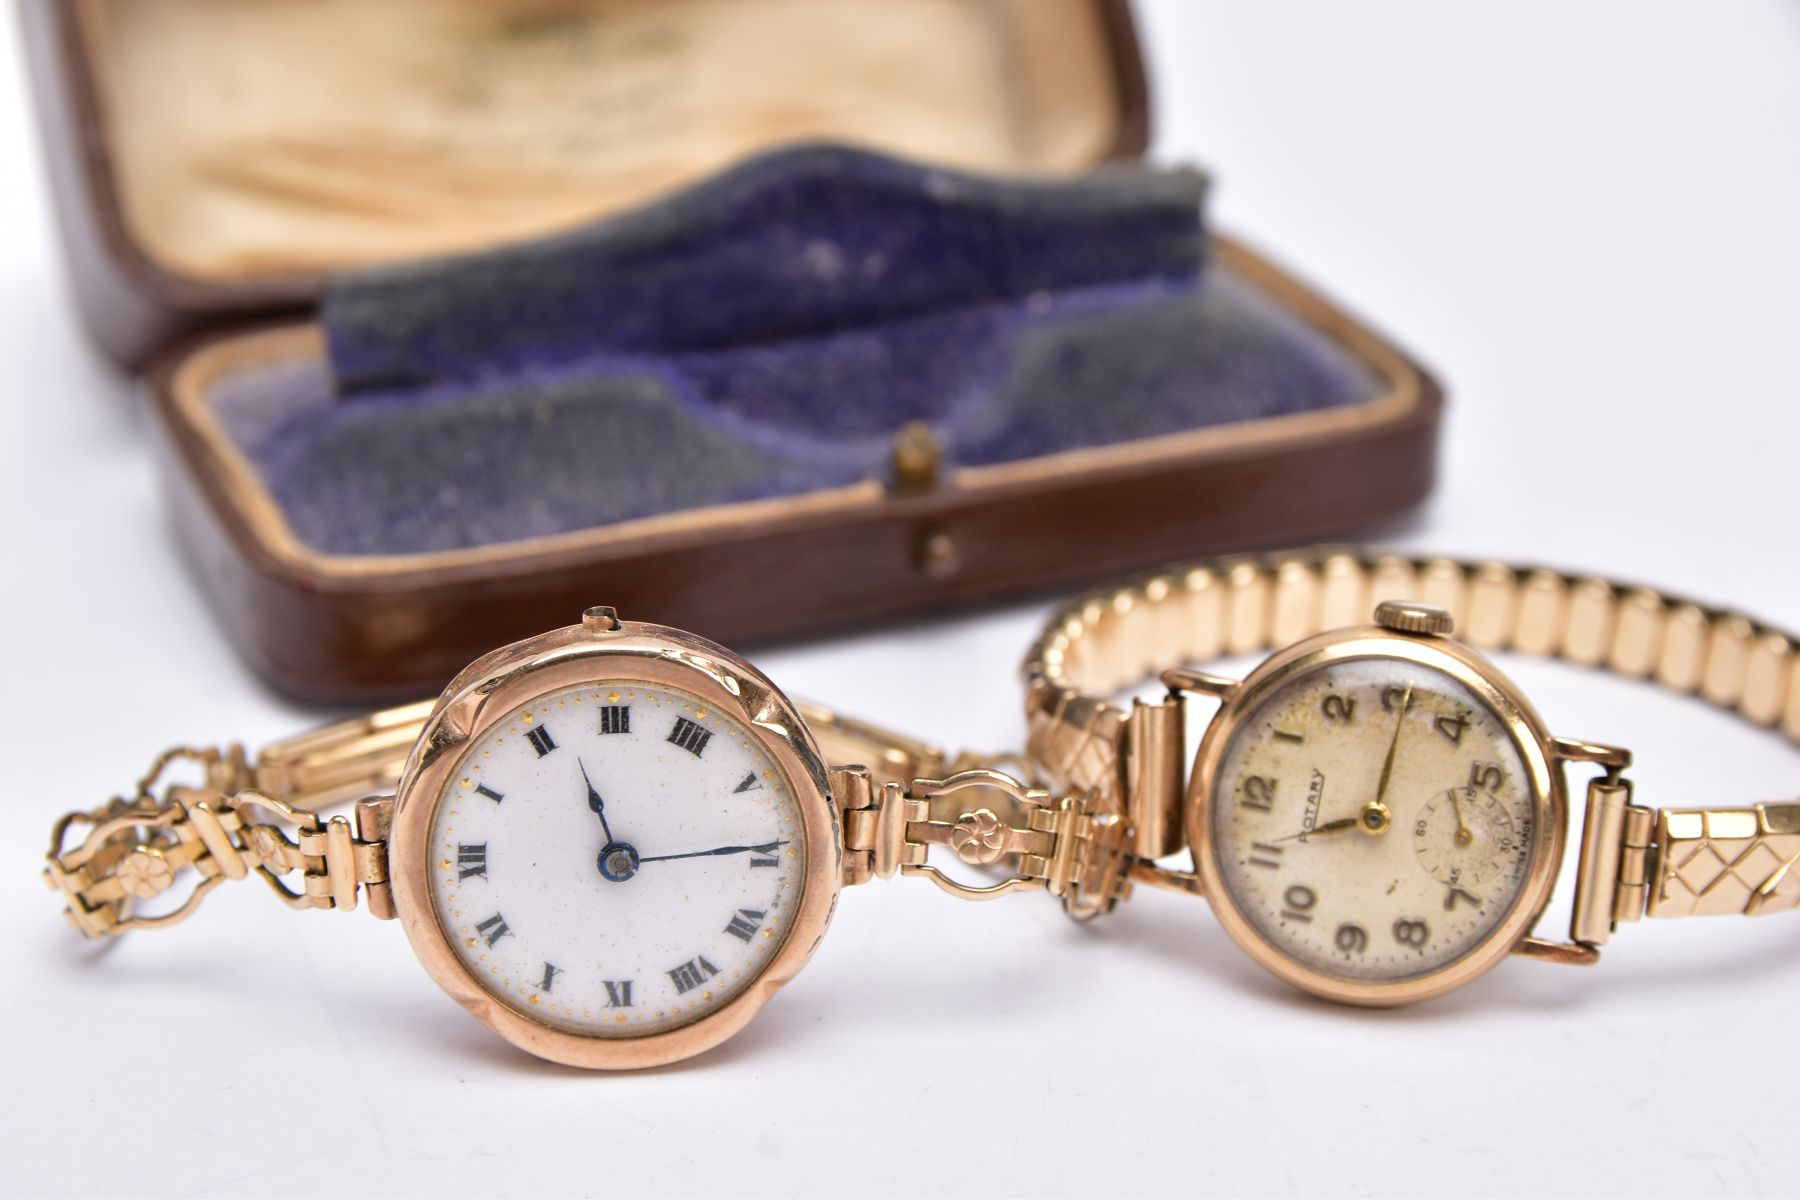 TWO GOLD CASED LADIES WRISTWATCHES, each fitted to gold plated bracelets, an early 20th century - Image 2 of 4